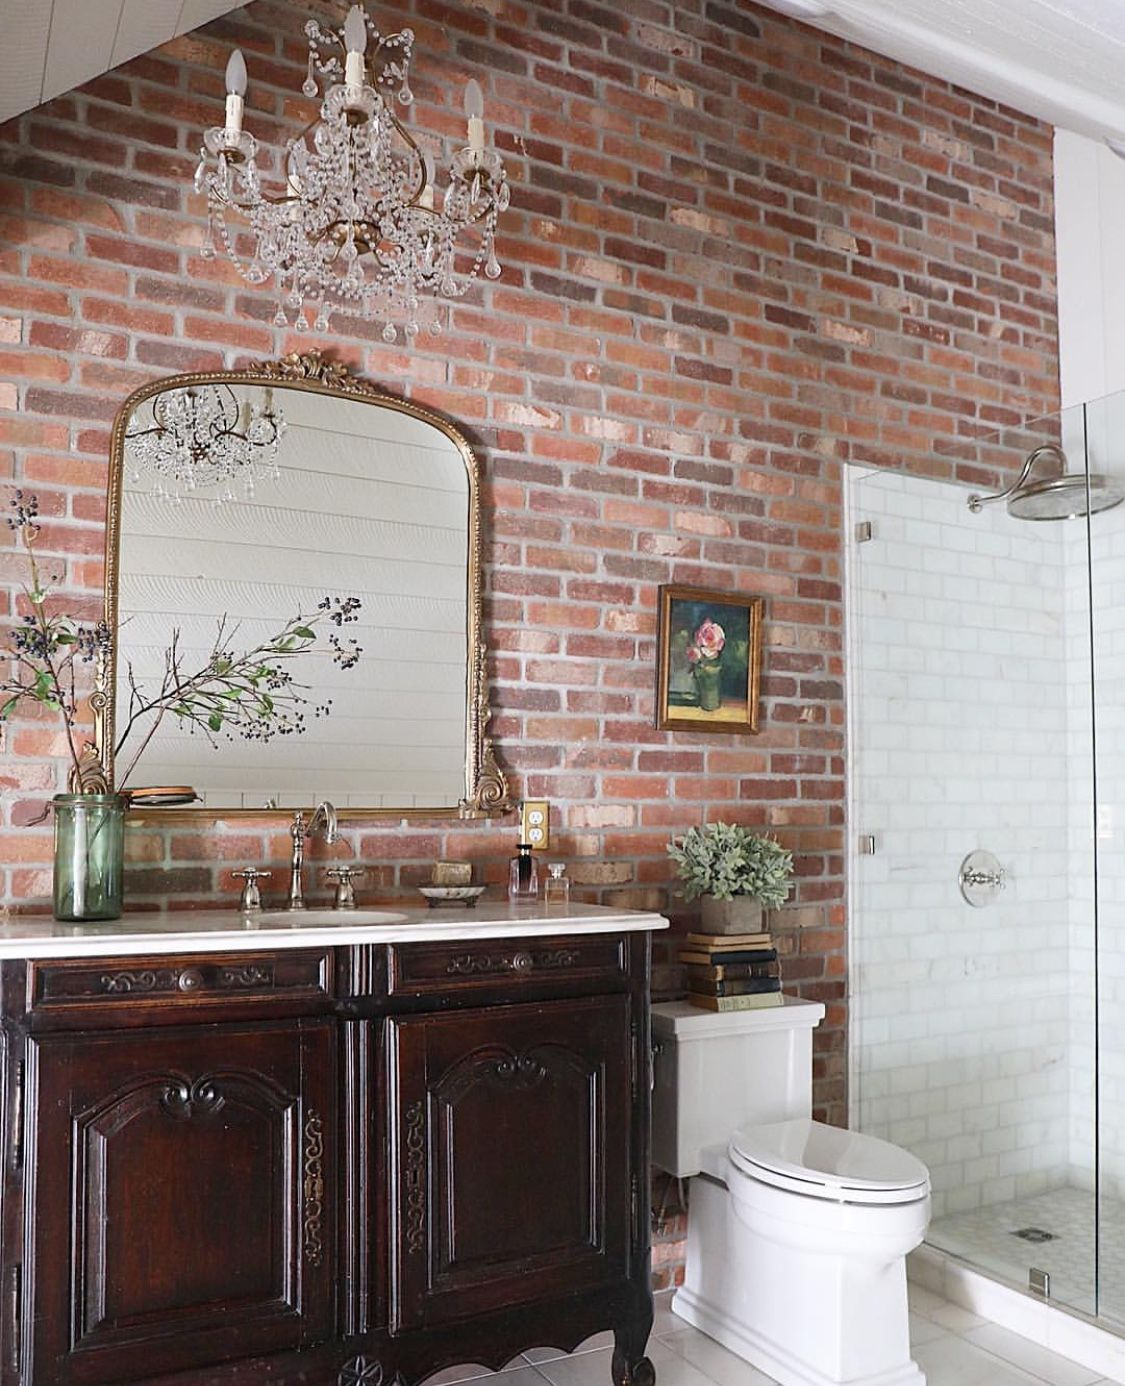 Brick Accent Wall Bathroom: Pin By Becky Garling On Bathrooms